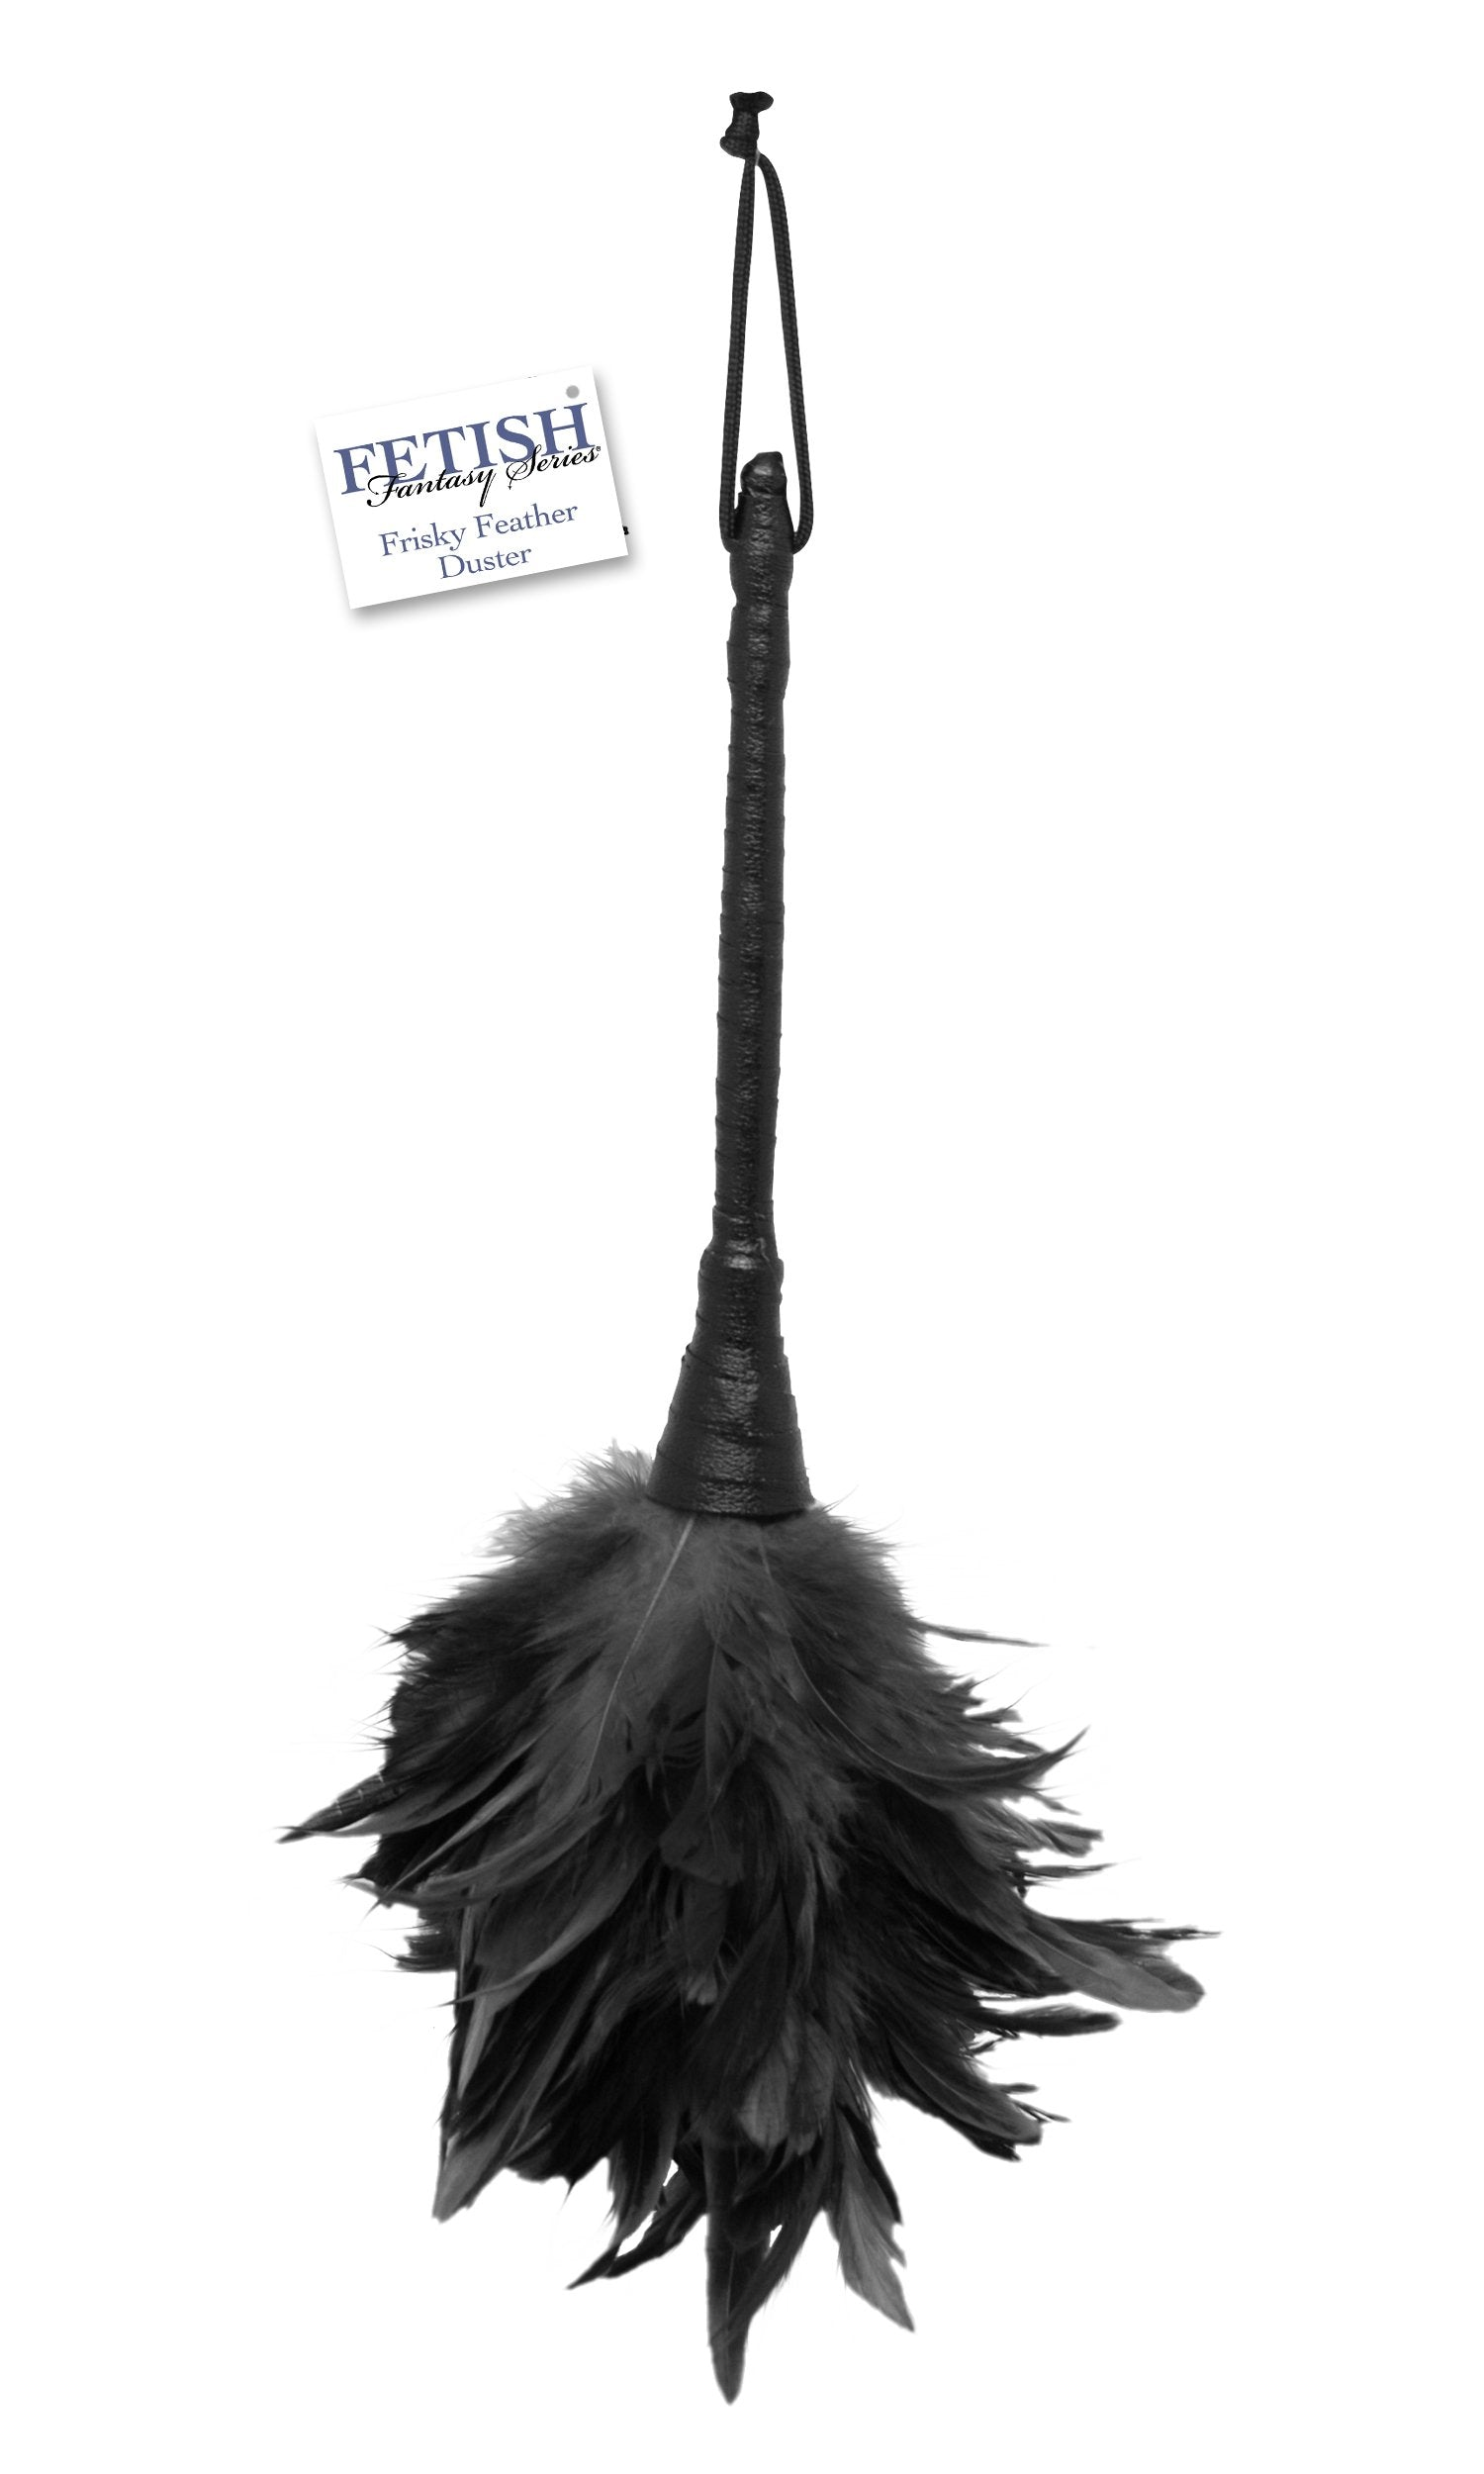 Fetish Fantasy Series Frisky Feather Duster